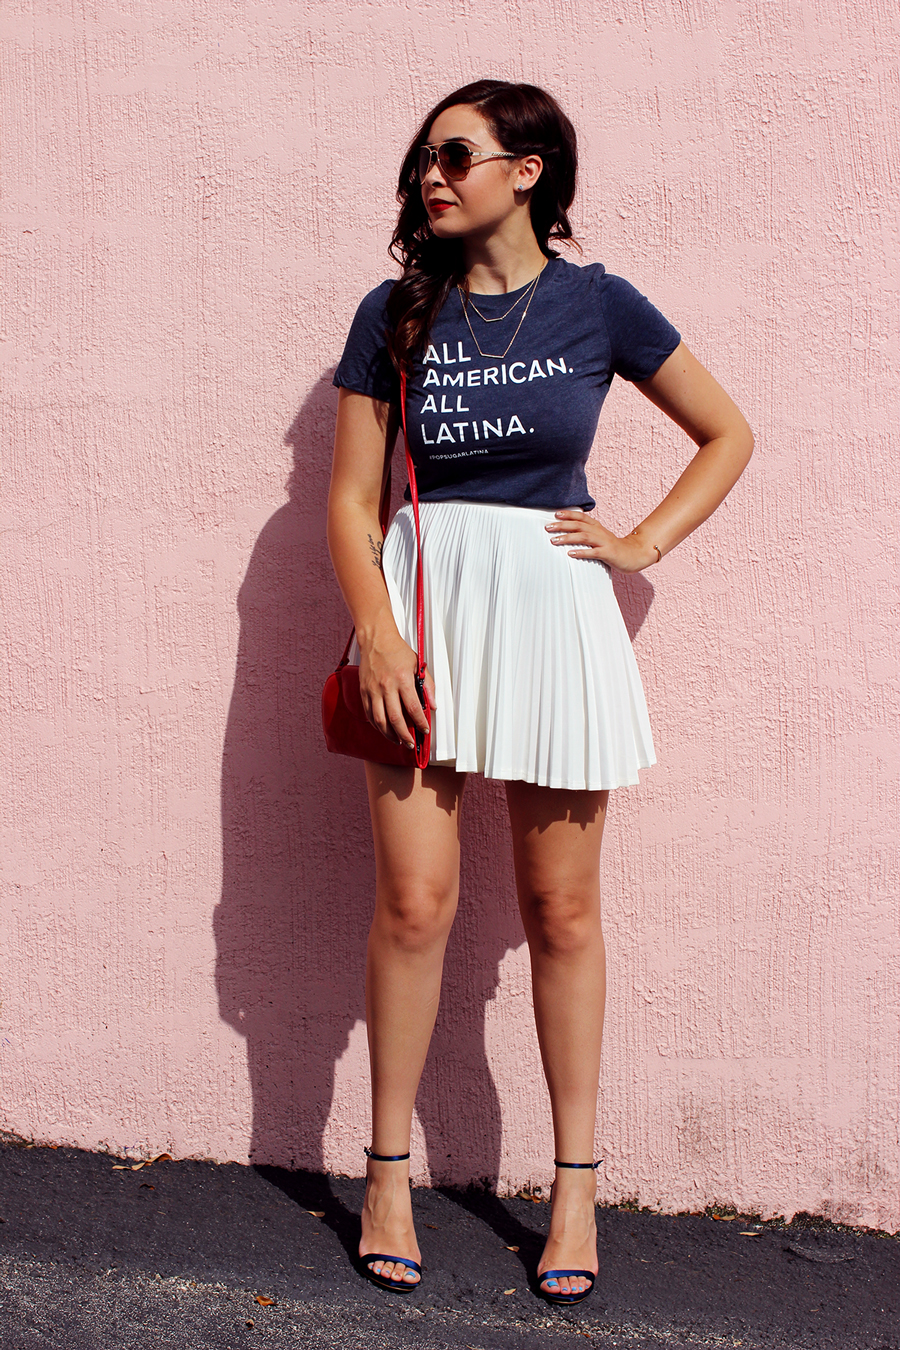 Fixin-to-thrill-latina-austin-fashion-blog-fourth-4th-july-style-holiday-themed-red-white-blue-popsugar-american-9